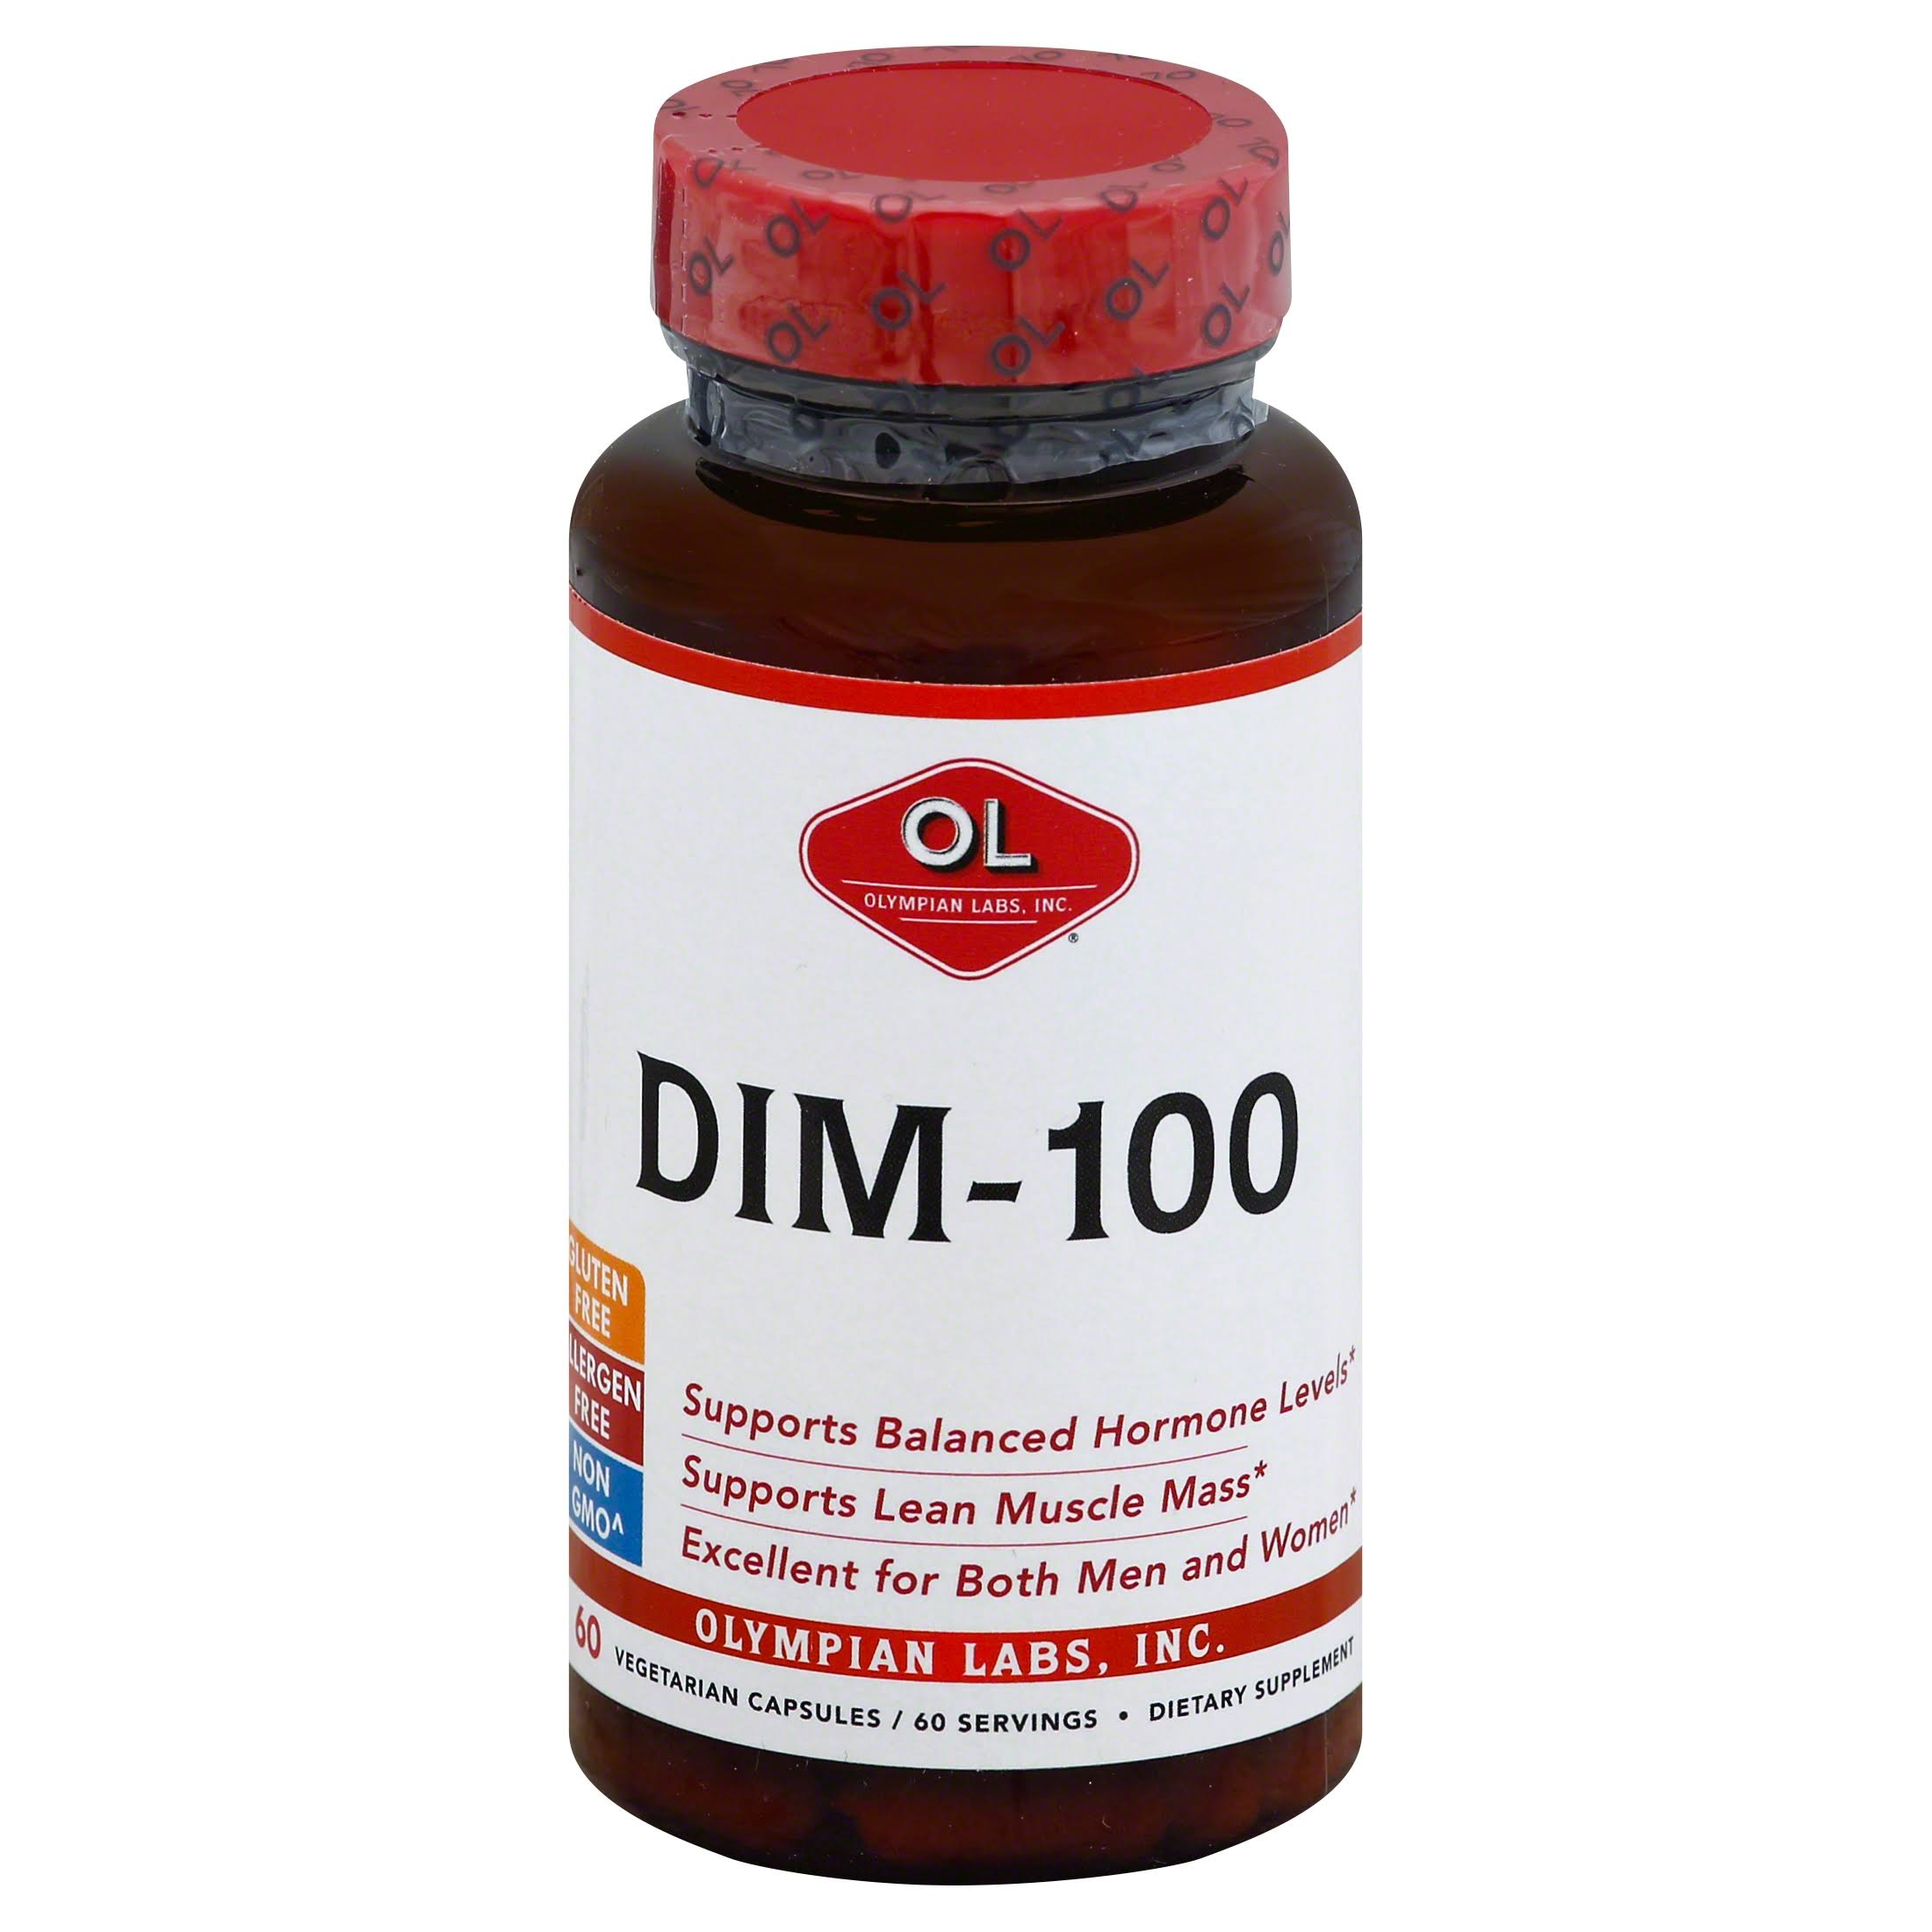 Olympian Labs Dim Dietary Supplement - 100mg, 60ct